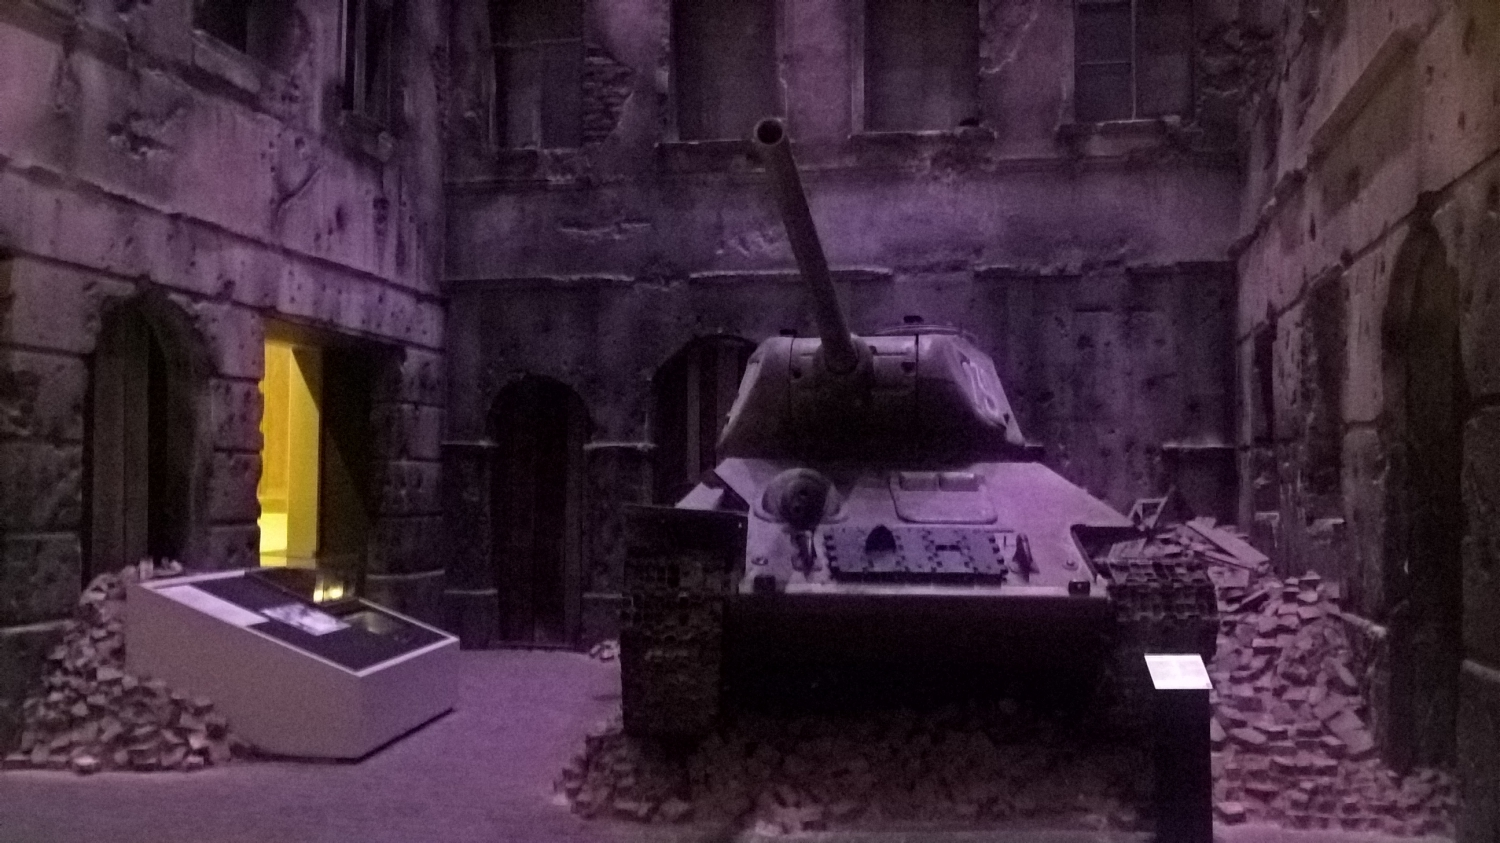 II WORLD WAR MUSEUM